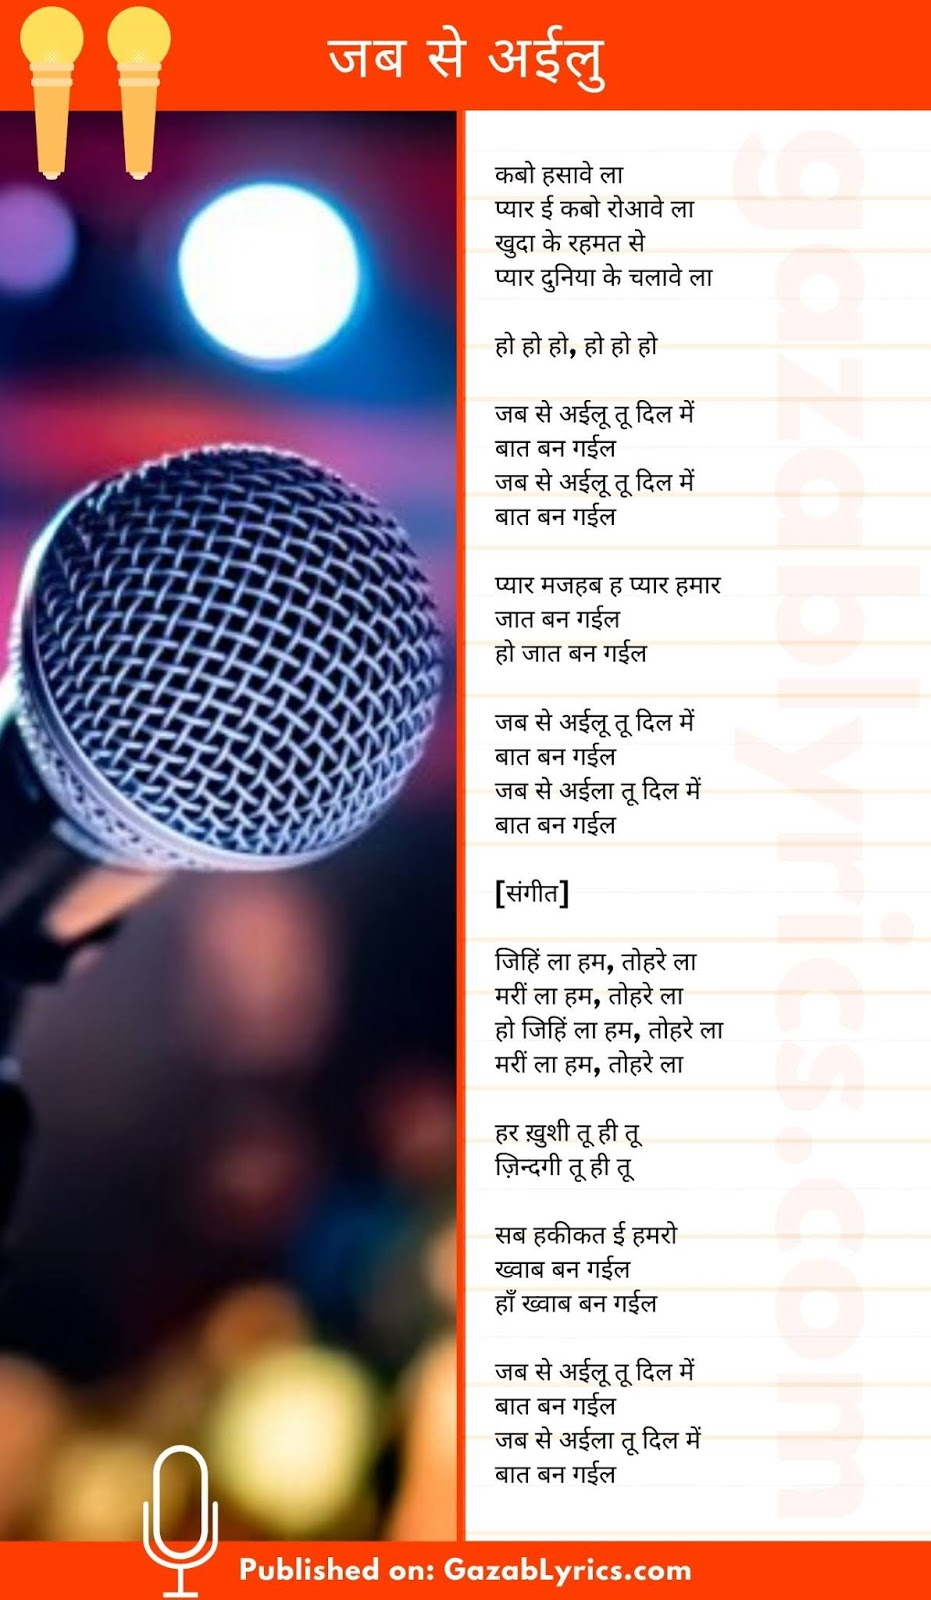 Jab Se Ailu song lyrics image